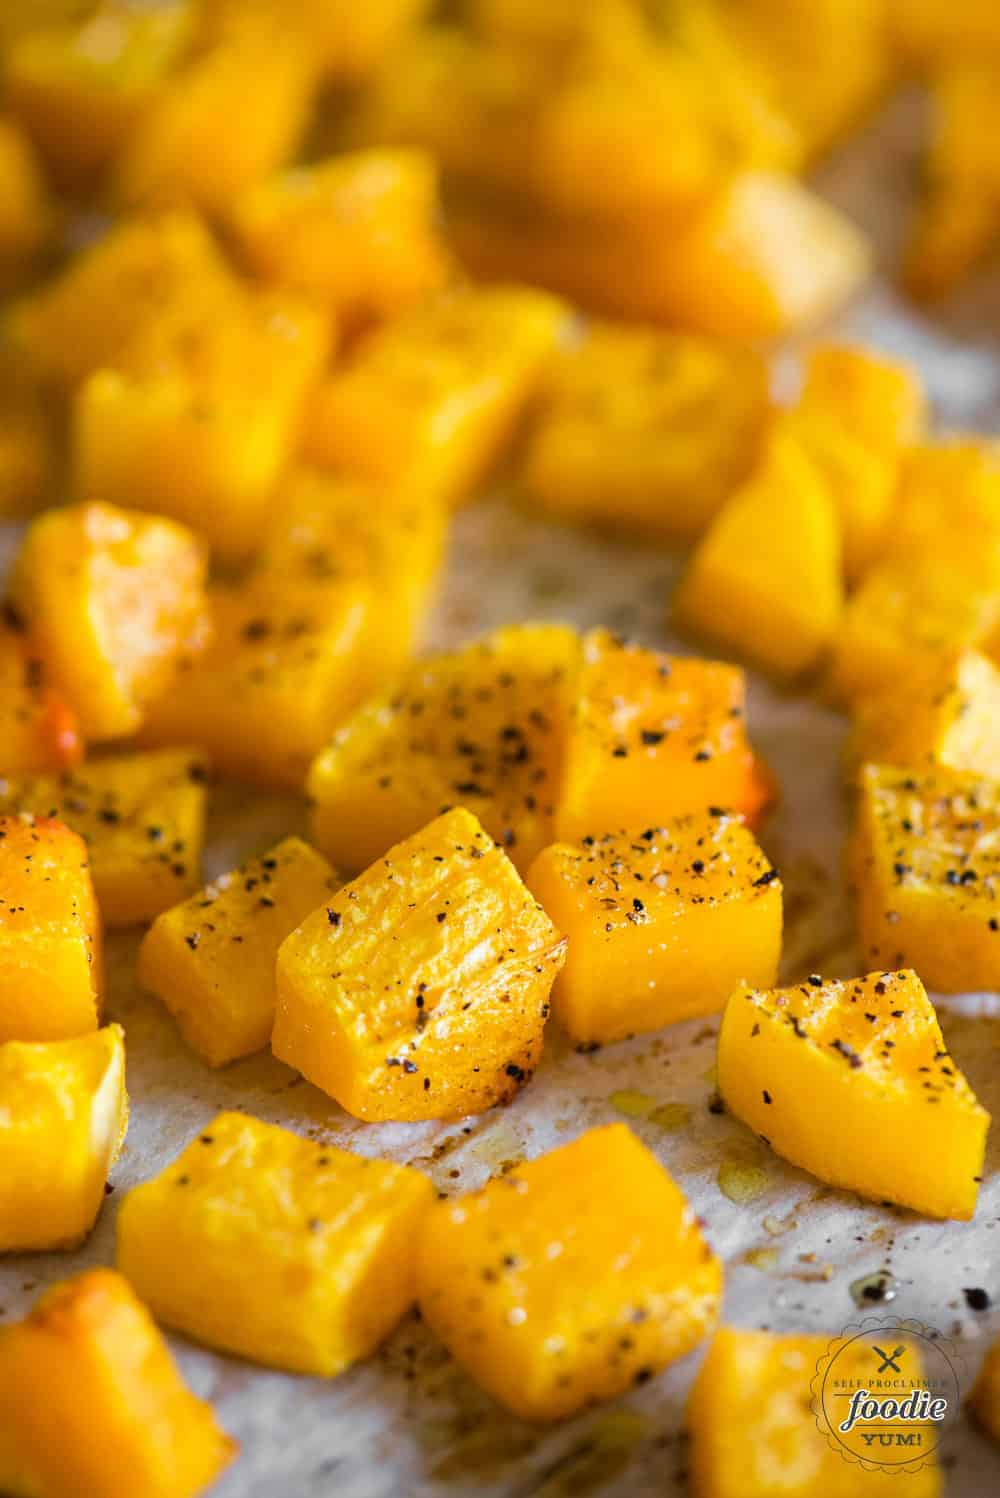 baked butternut squash from whole squash